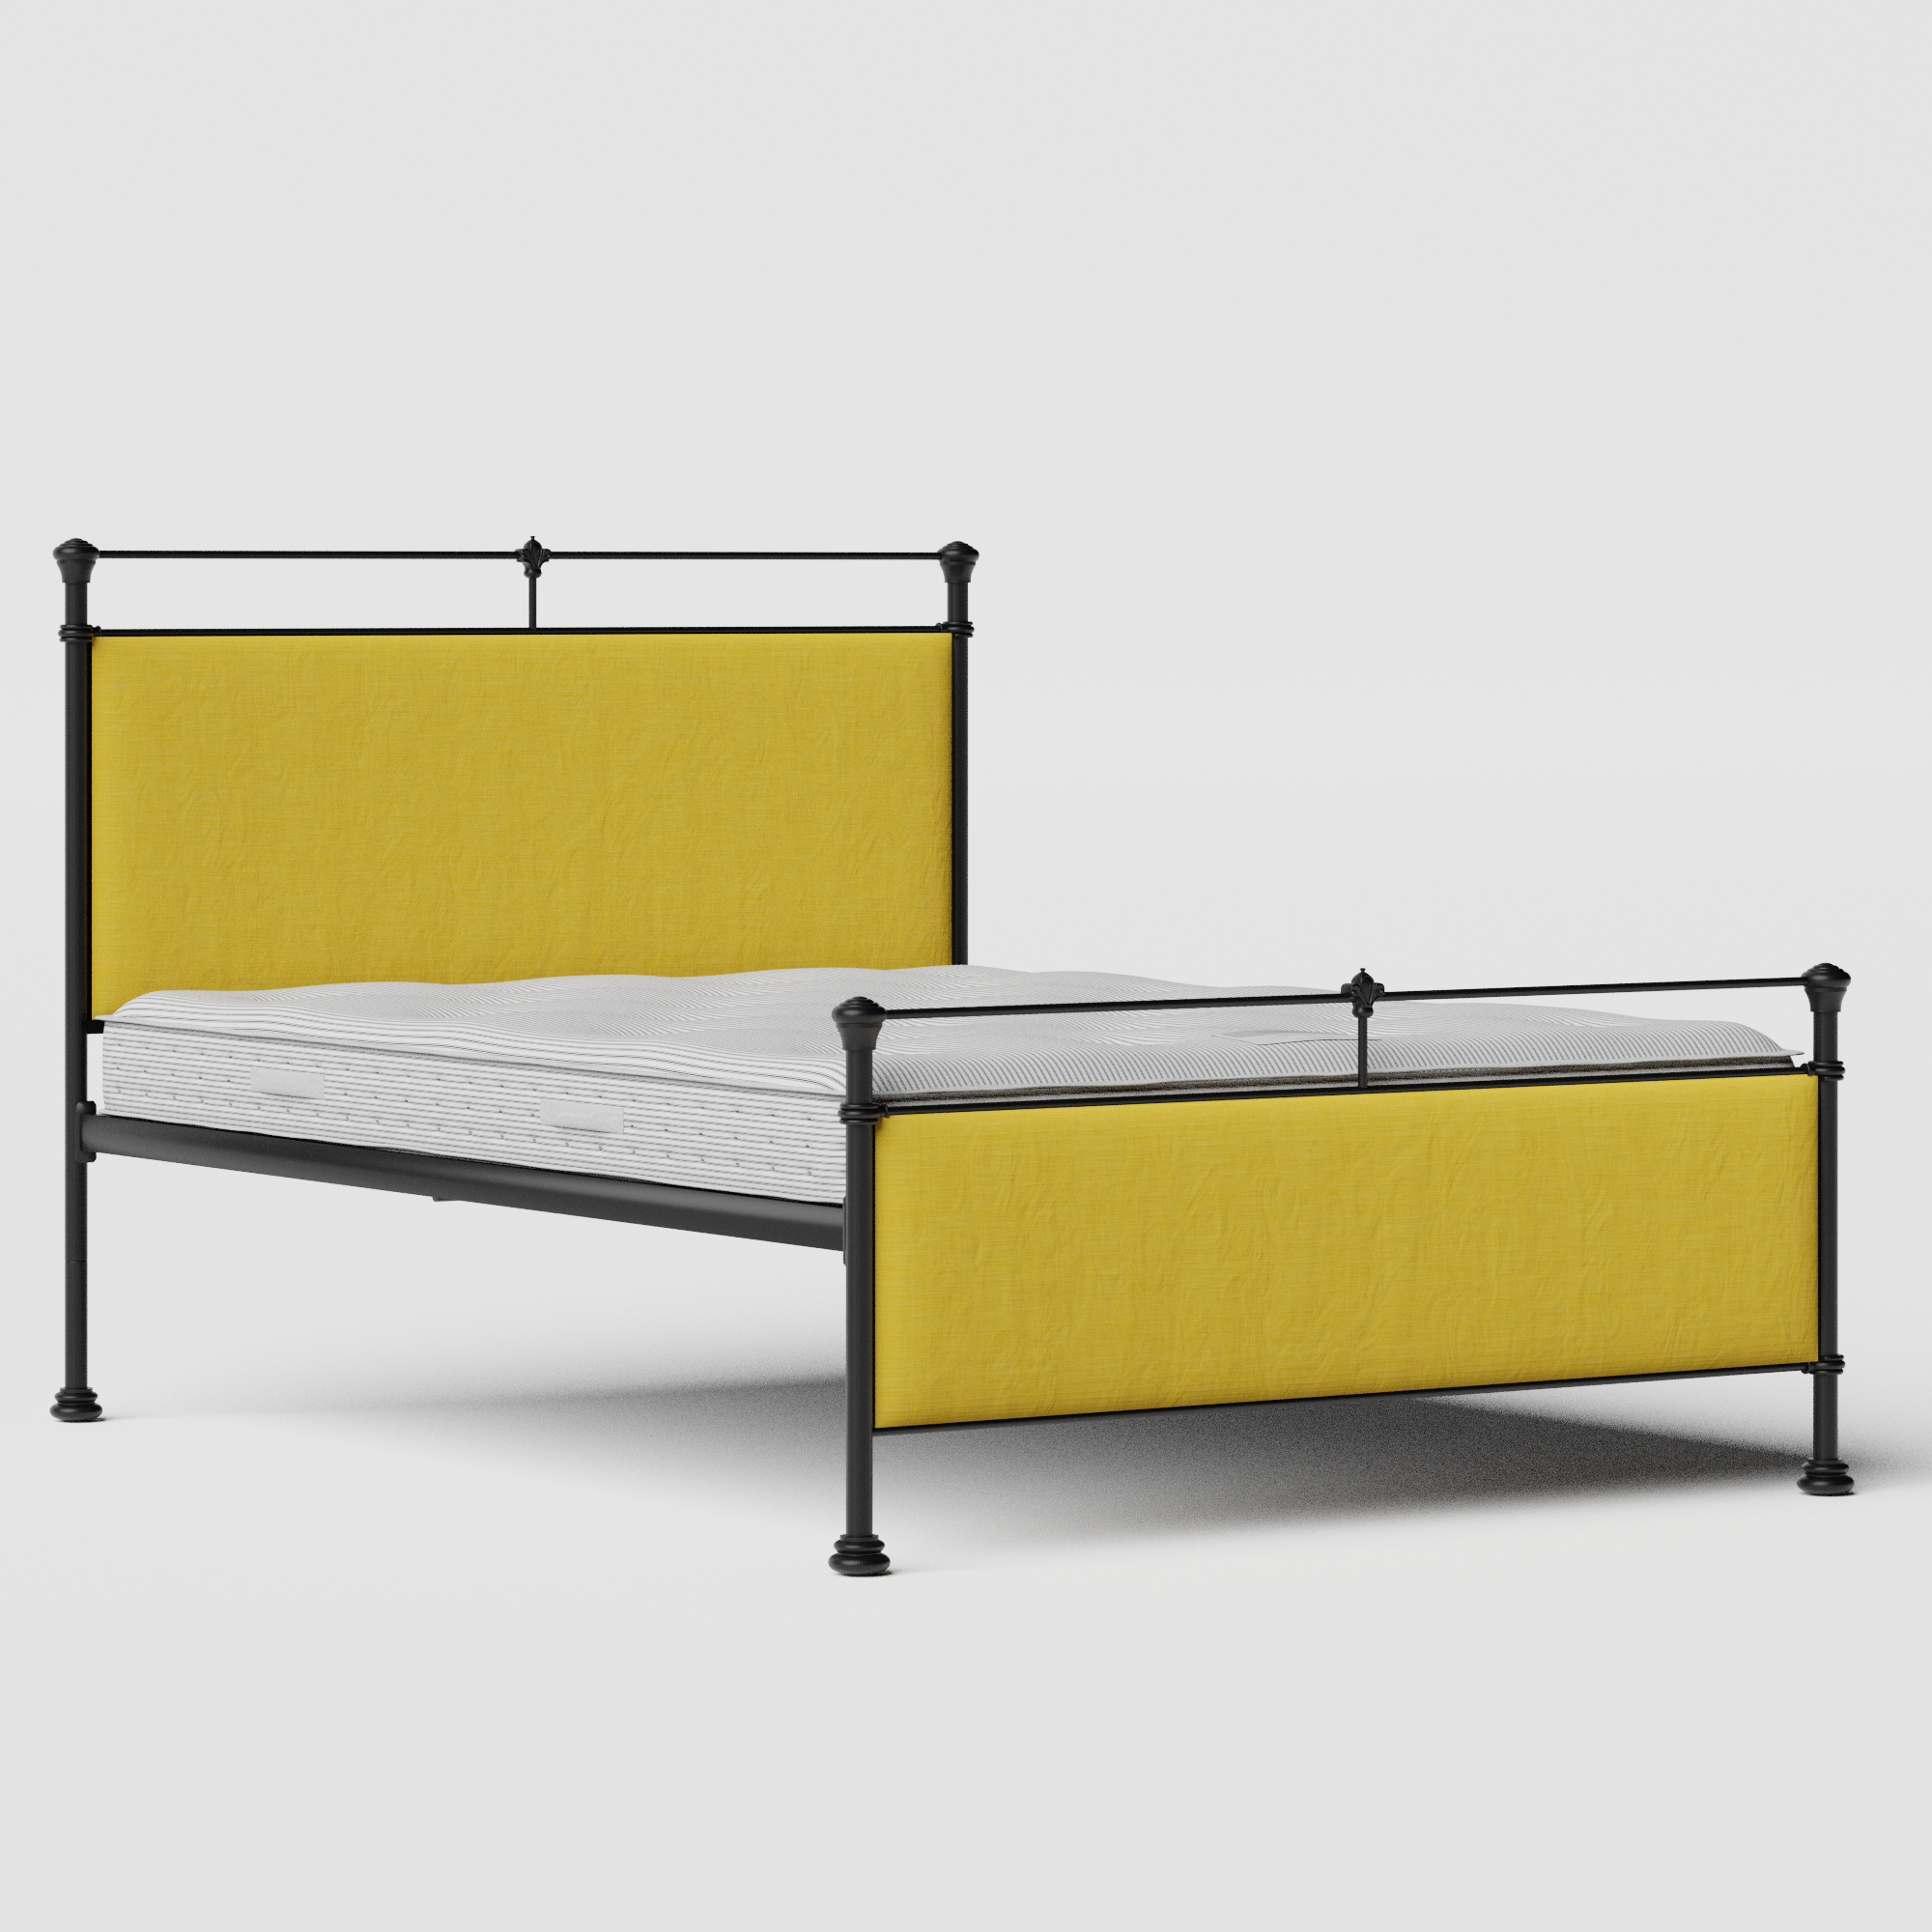 Nancy iron/metal upholstered bed in black with sunflower fabric